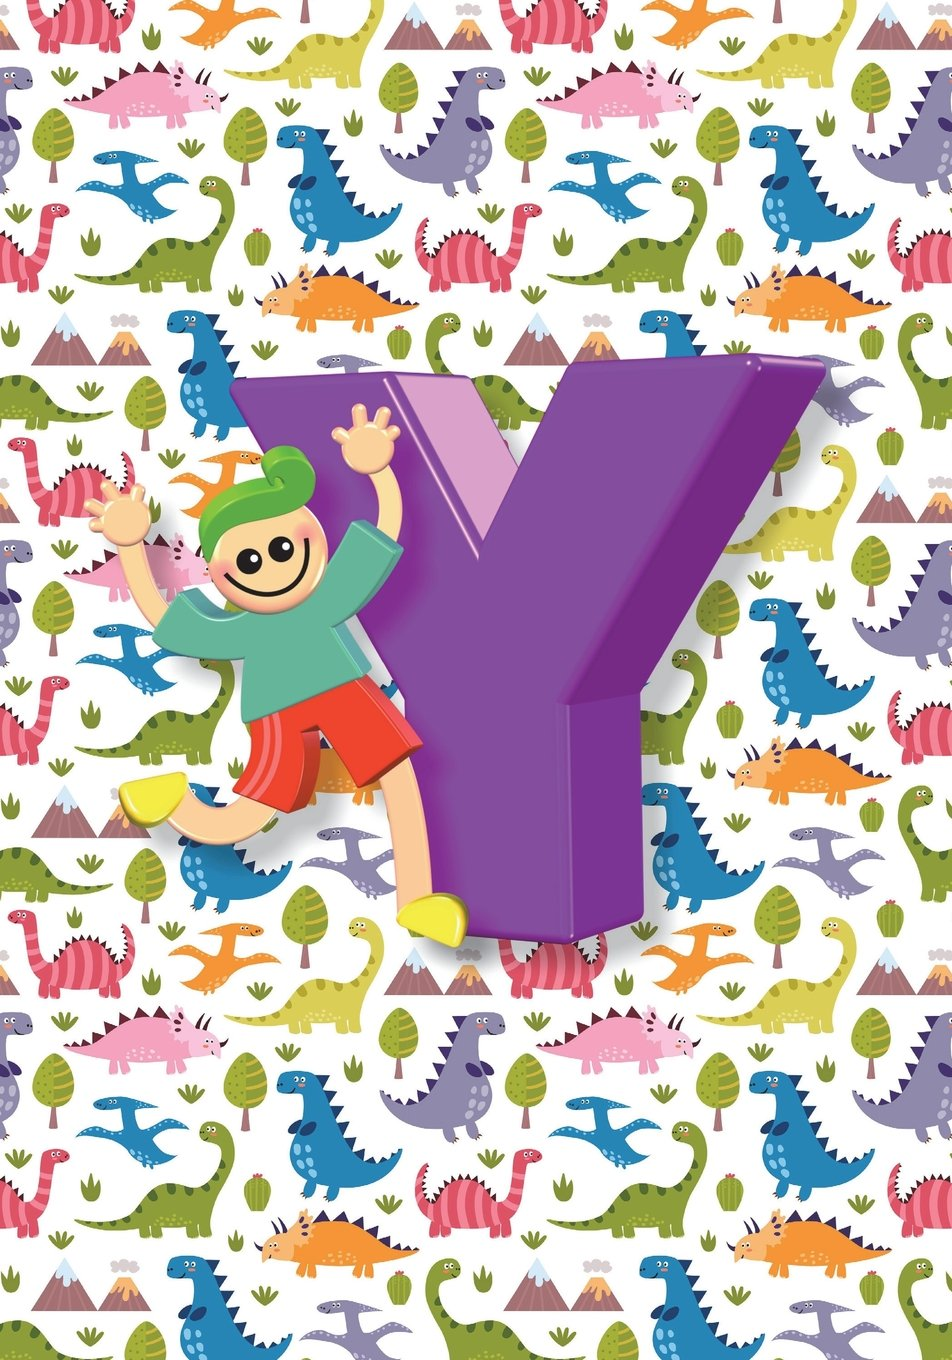 Y Notebook: Back To School Notebooks, Soft Paperback, Cute College Ruled Notebook - Journal Or Diary Notebook for Boys pdf